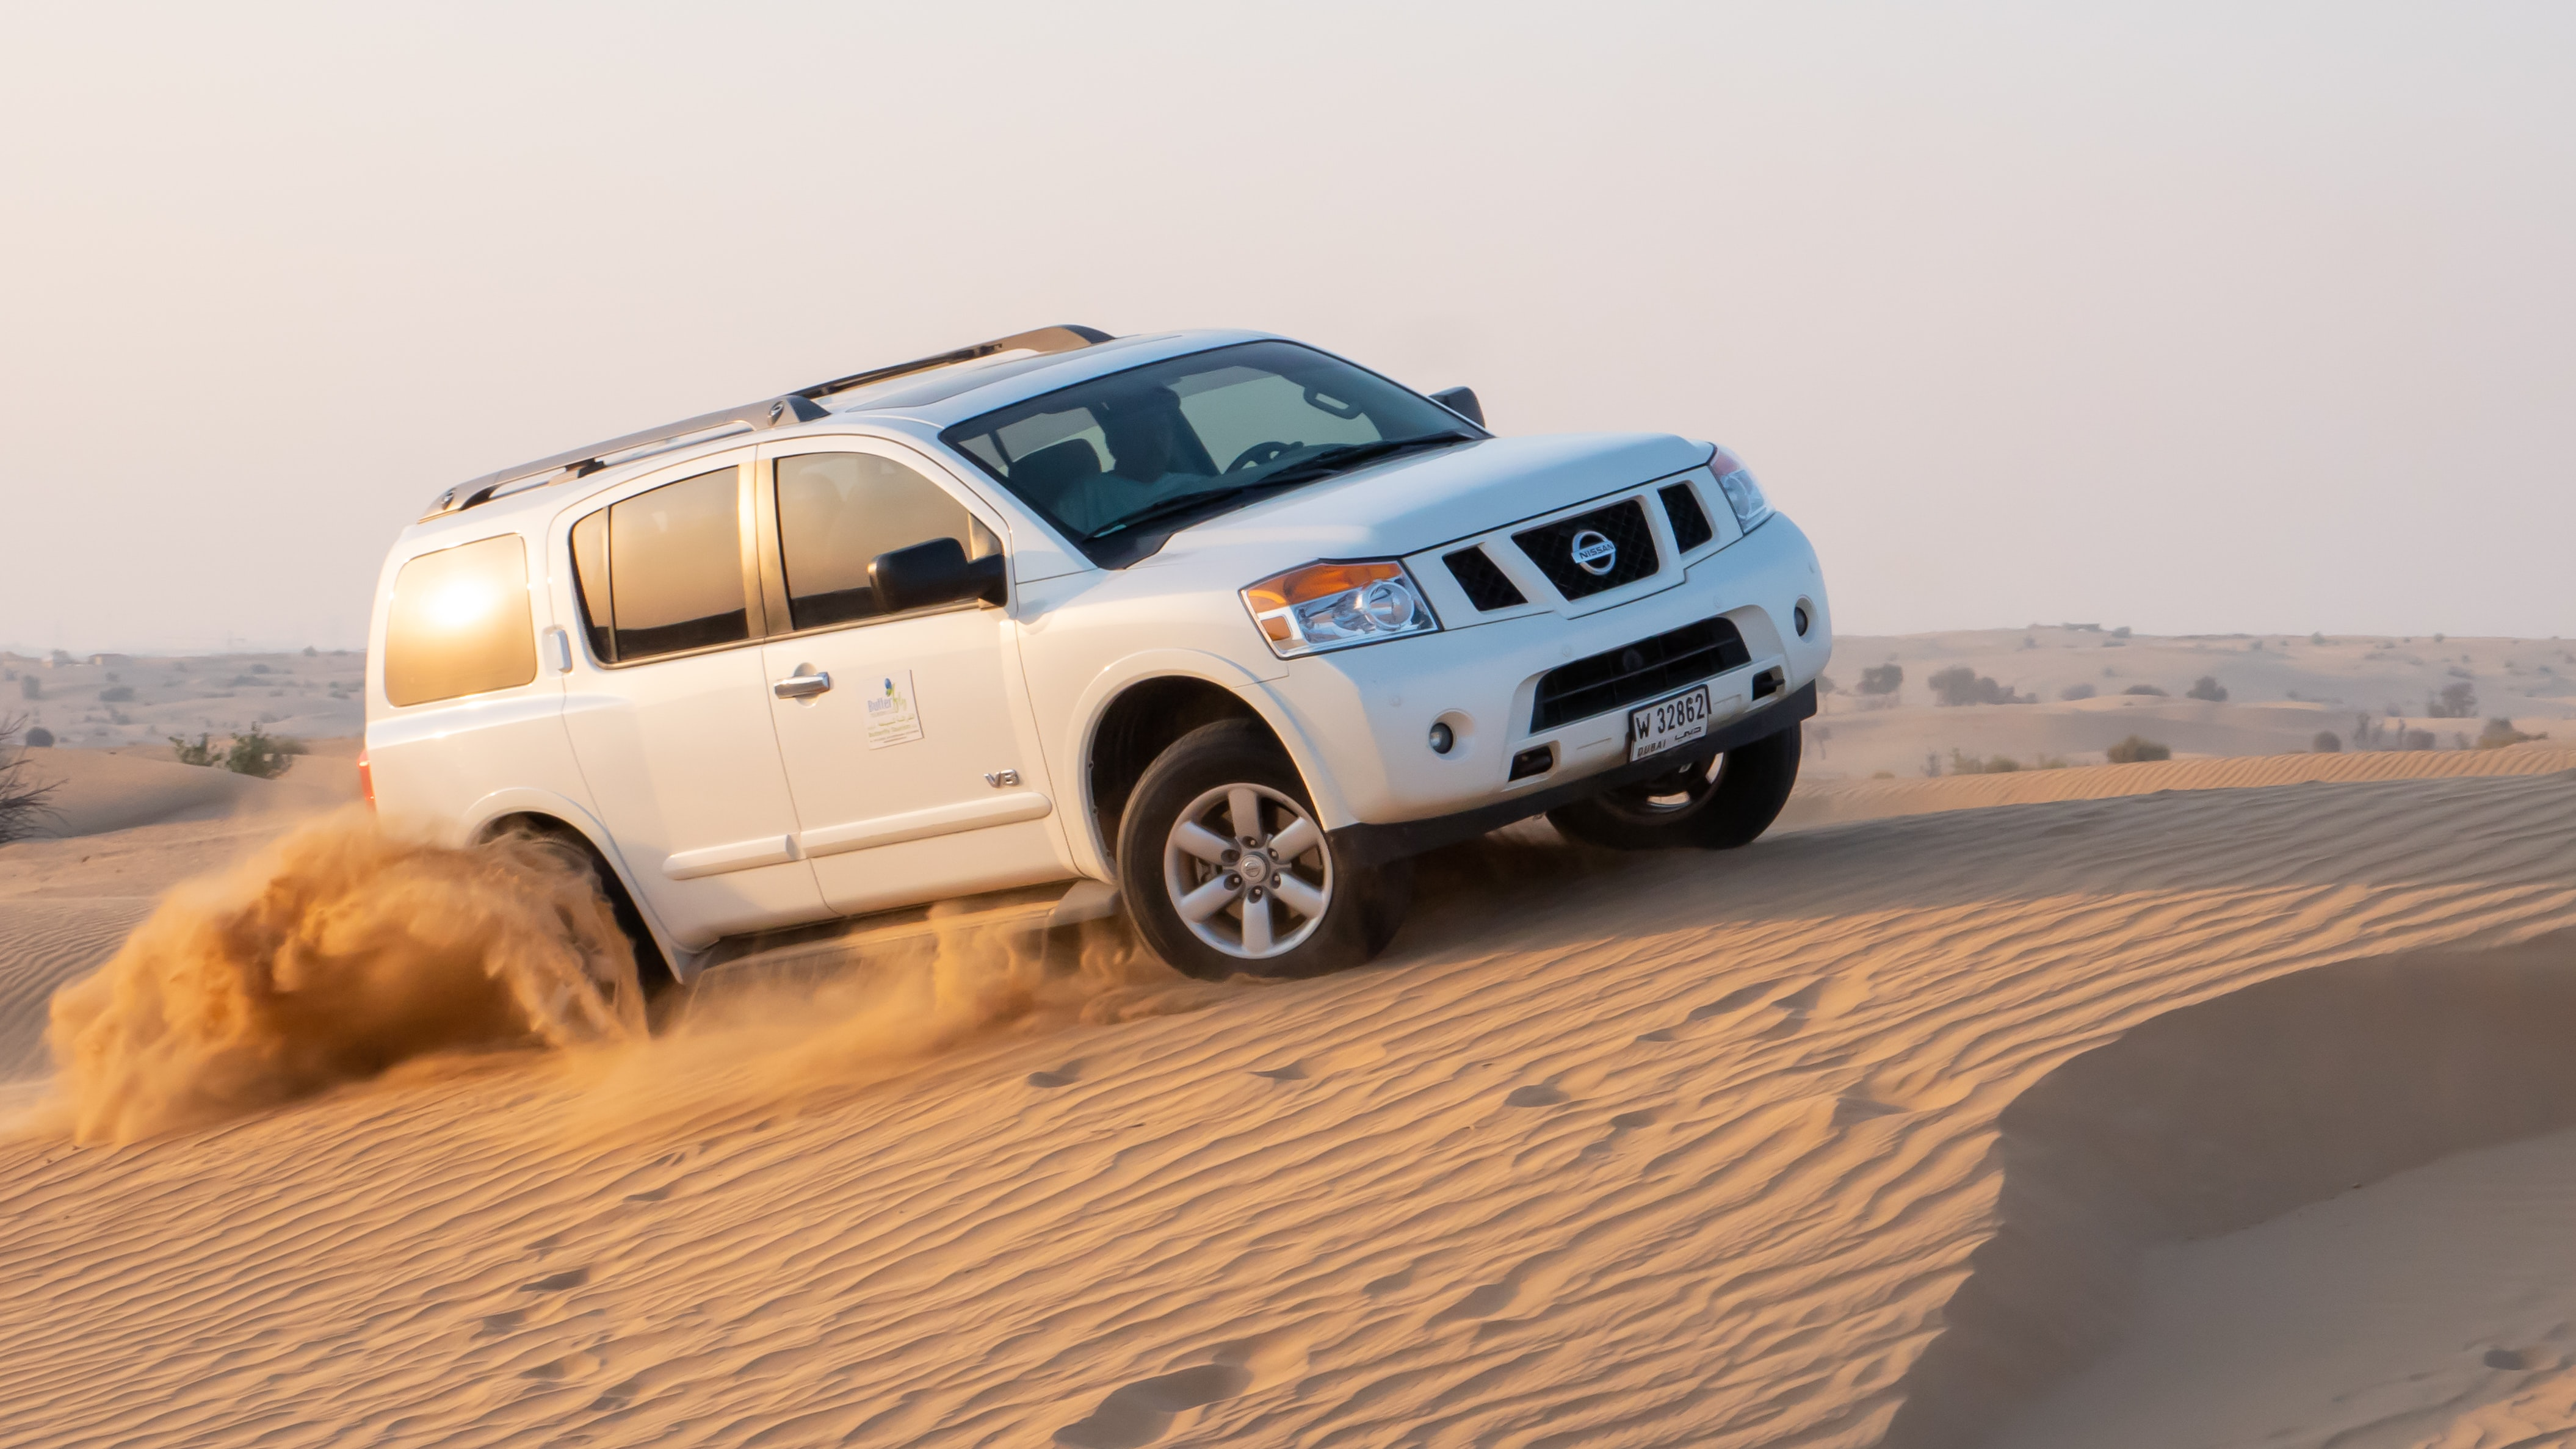 White Nissan Suv At The Desert During Day Photo Free Car Image On Unsplash